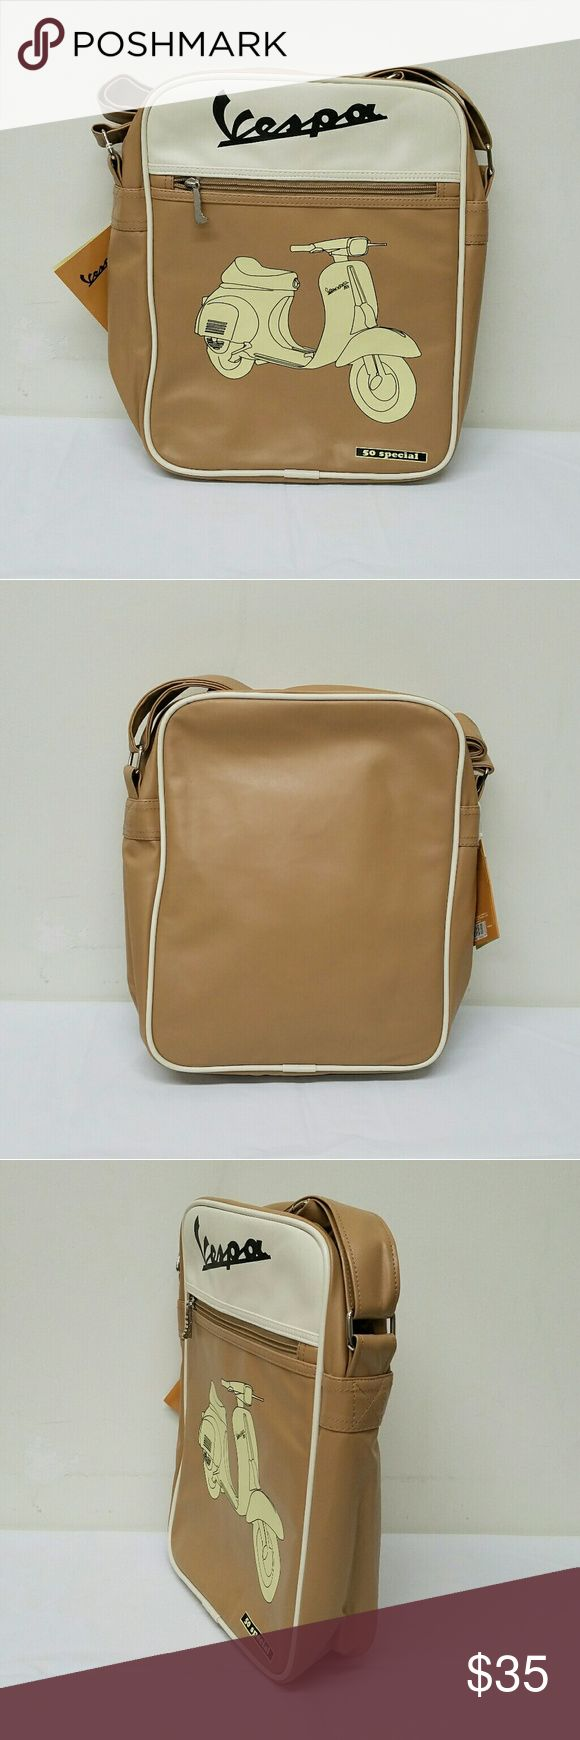 Vespa Beige Shoulder Bag Eco-leather. Adjustable shoulder strap. Inner zippered pocket. Extra compartments. Brand new with tags. Vespa Bags